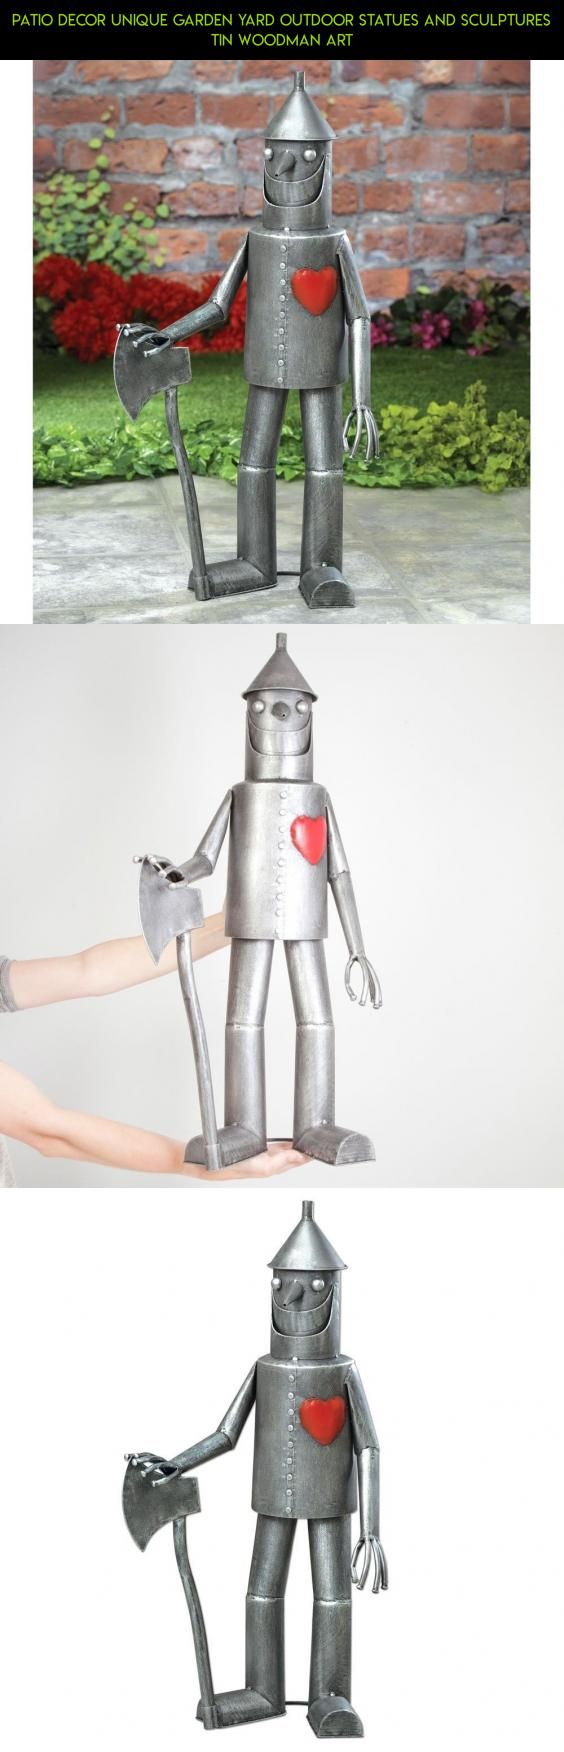 Patio Decor Unique Garden Yard Outdoor Statues And Sculptures Tin Woodman Art #products #gadgets #tech #camera #decor #parts #fpv #outdoor #shopping #plans #racing #unique #drone #technology #kit